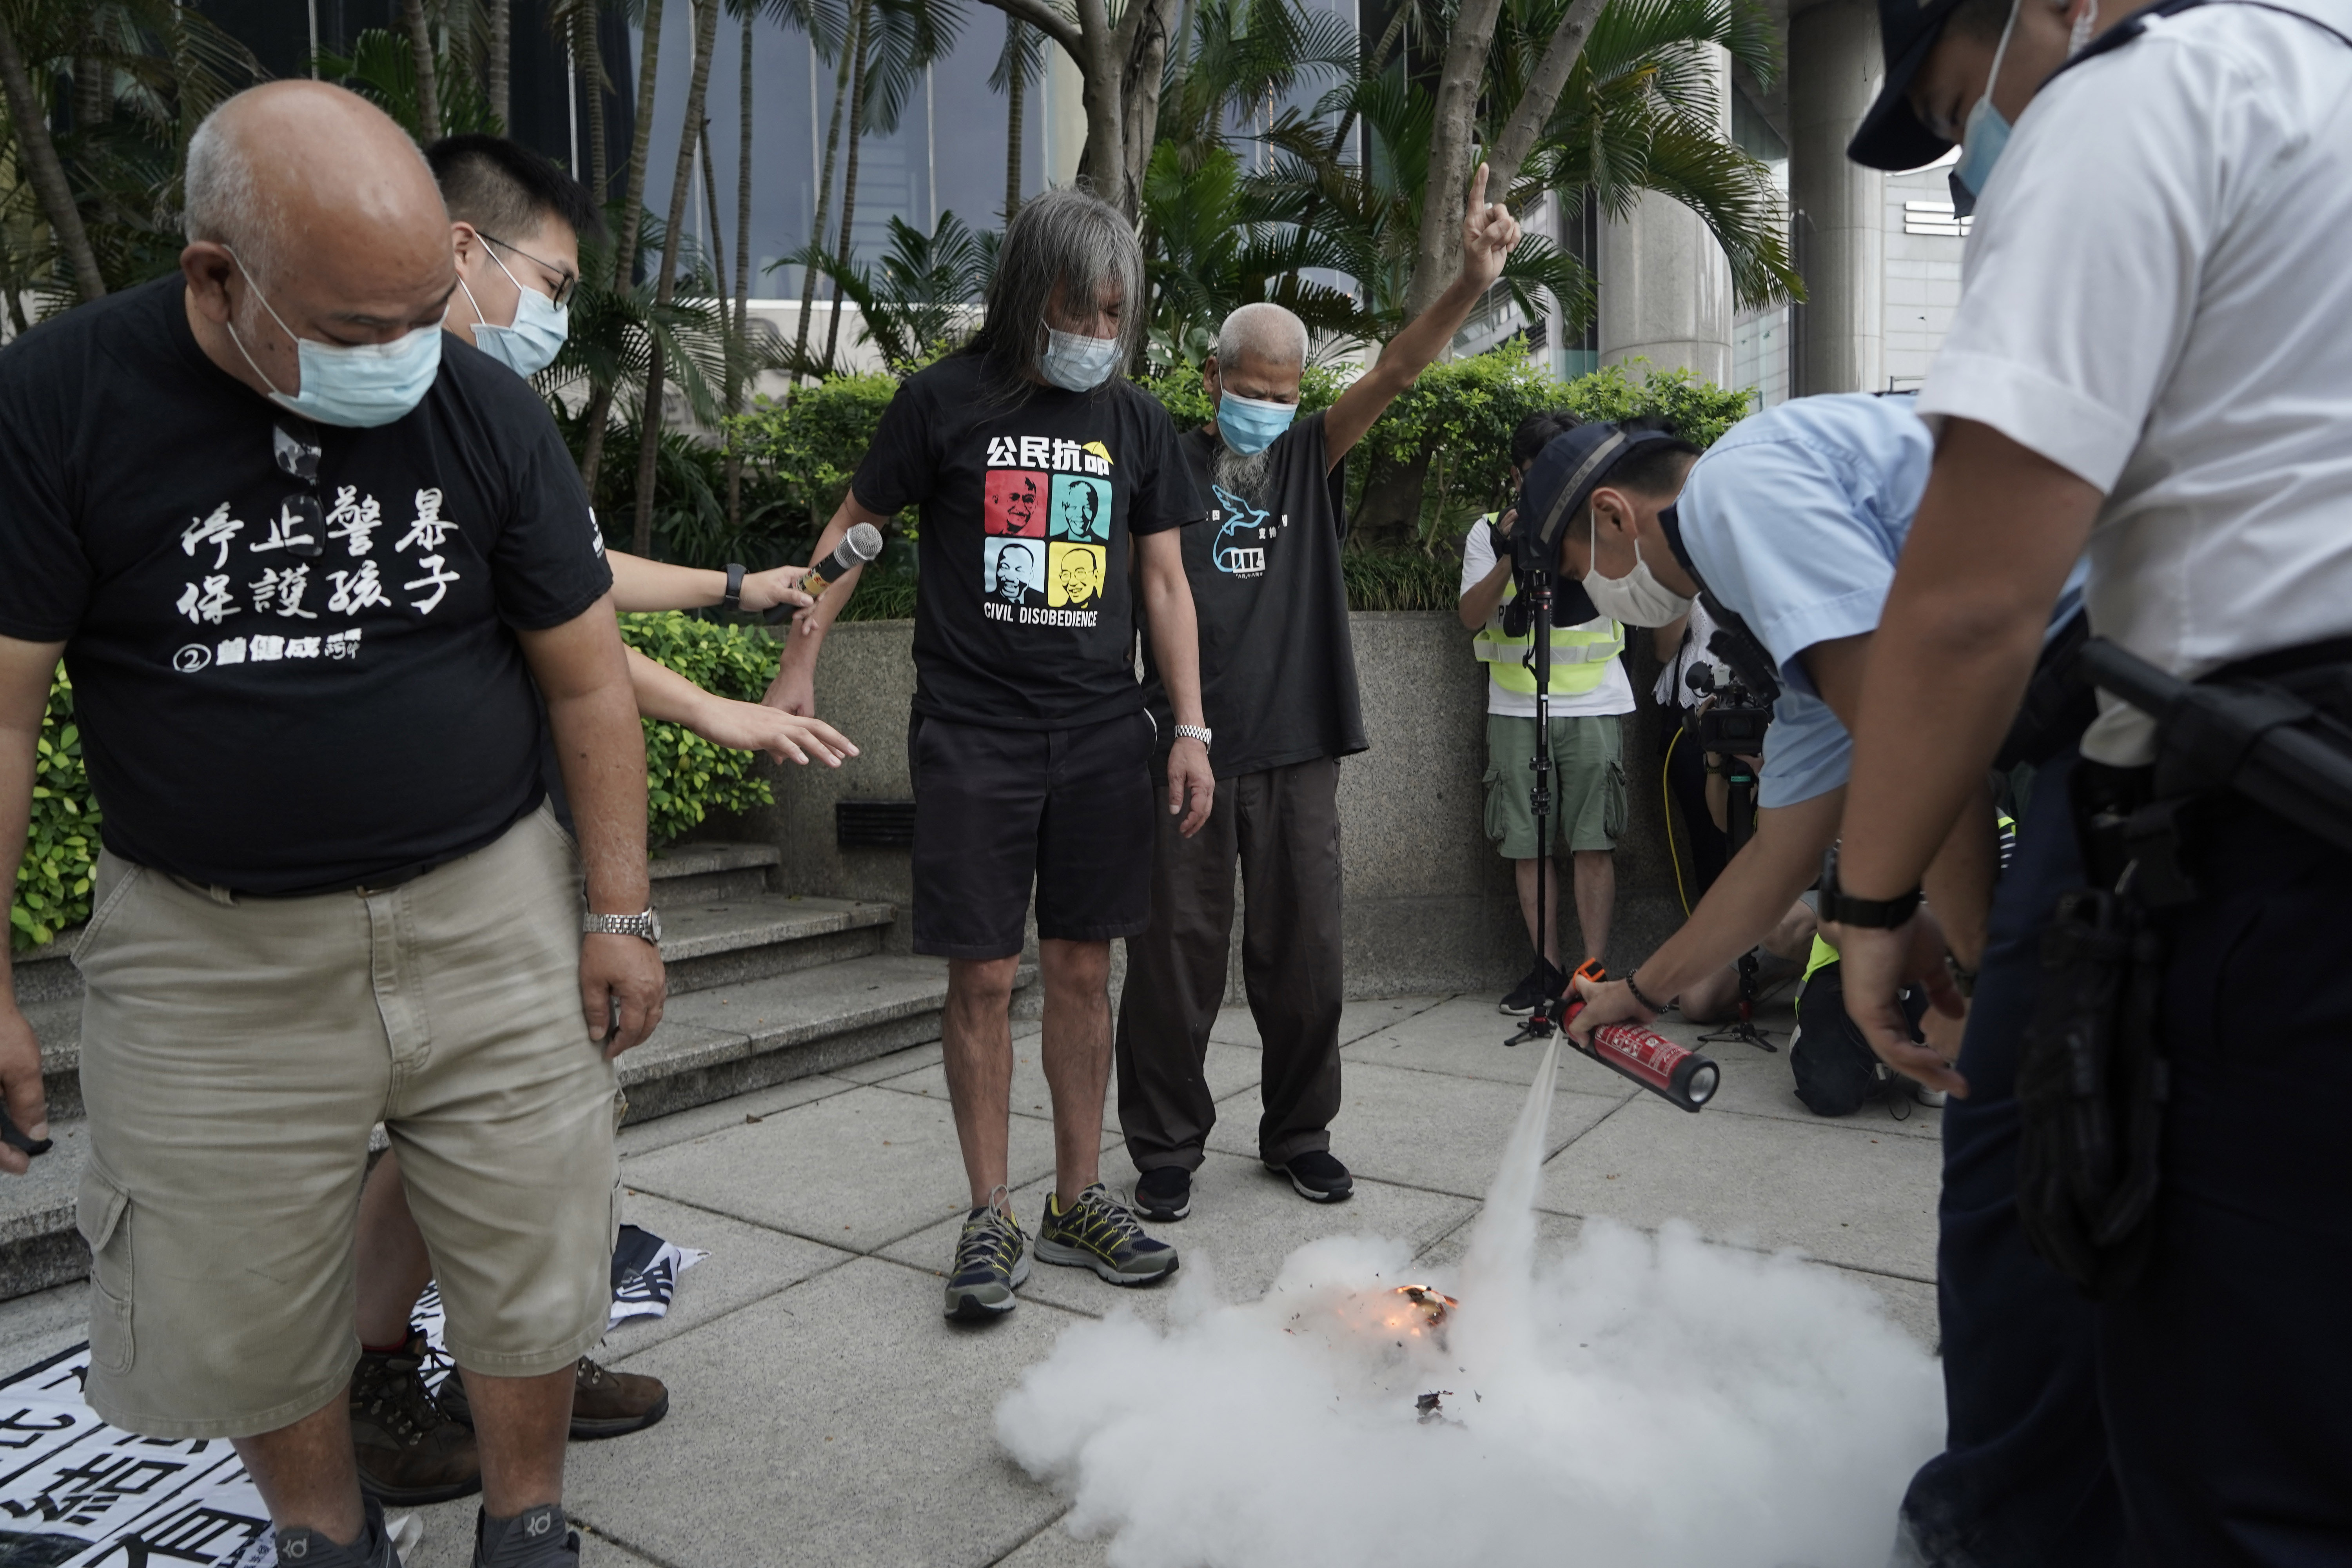 Hong Kong police arrest 60 for protesting on China holiday